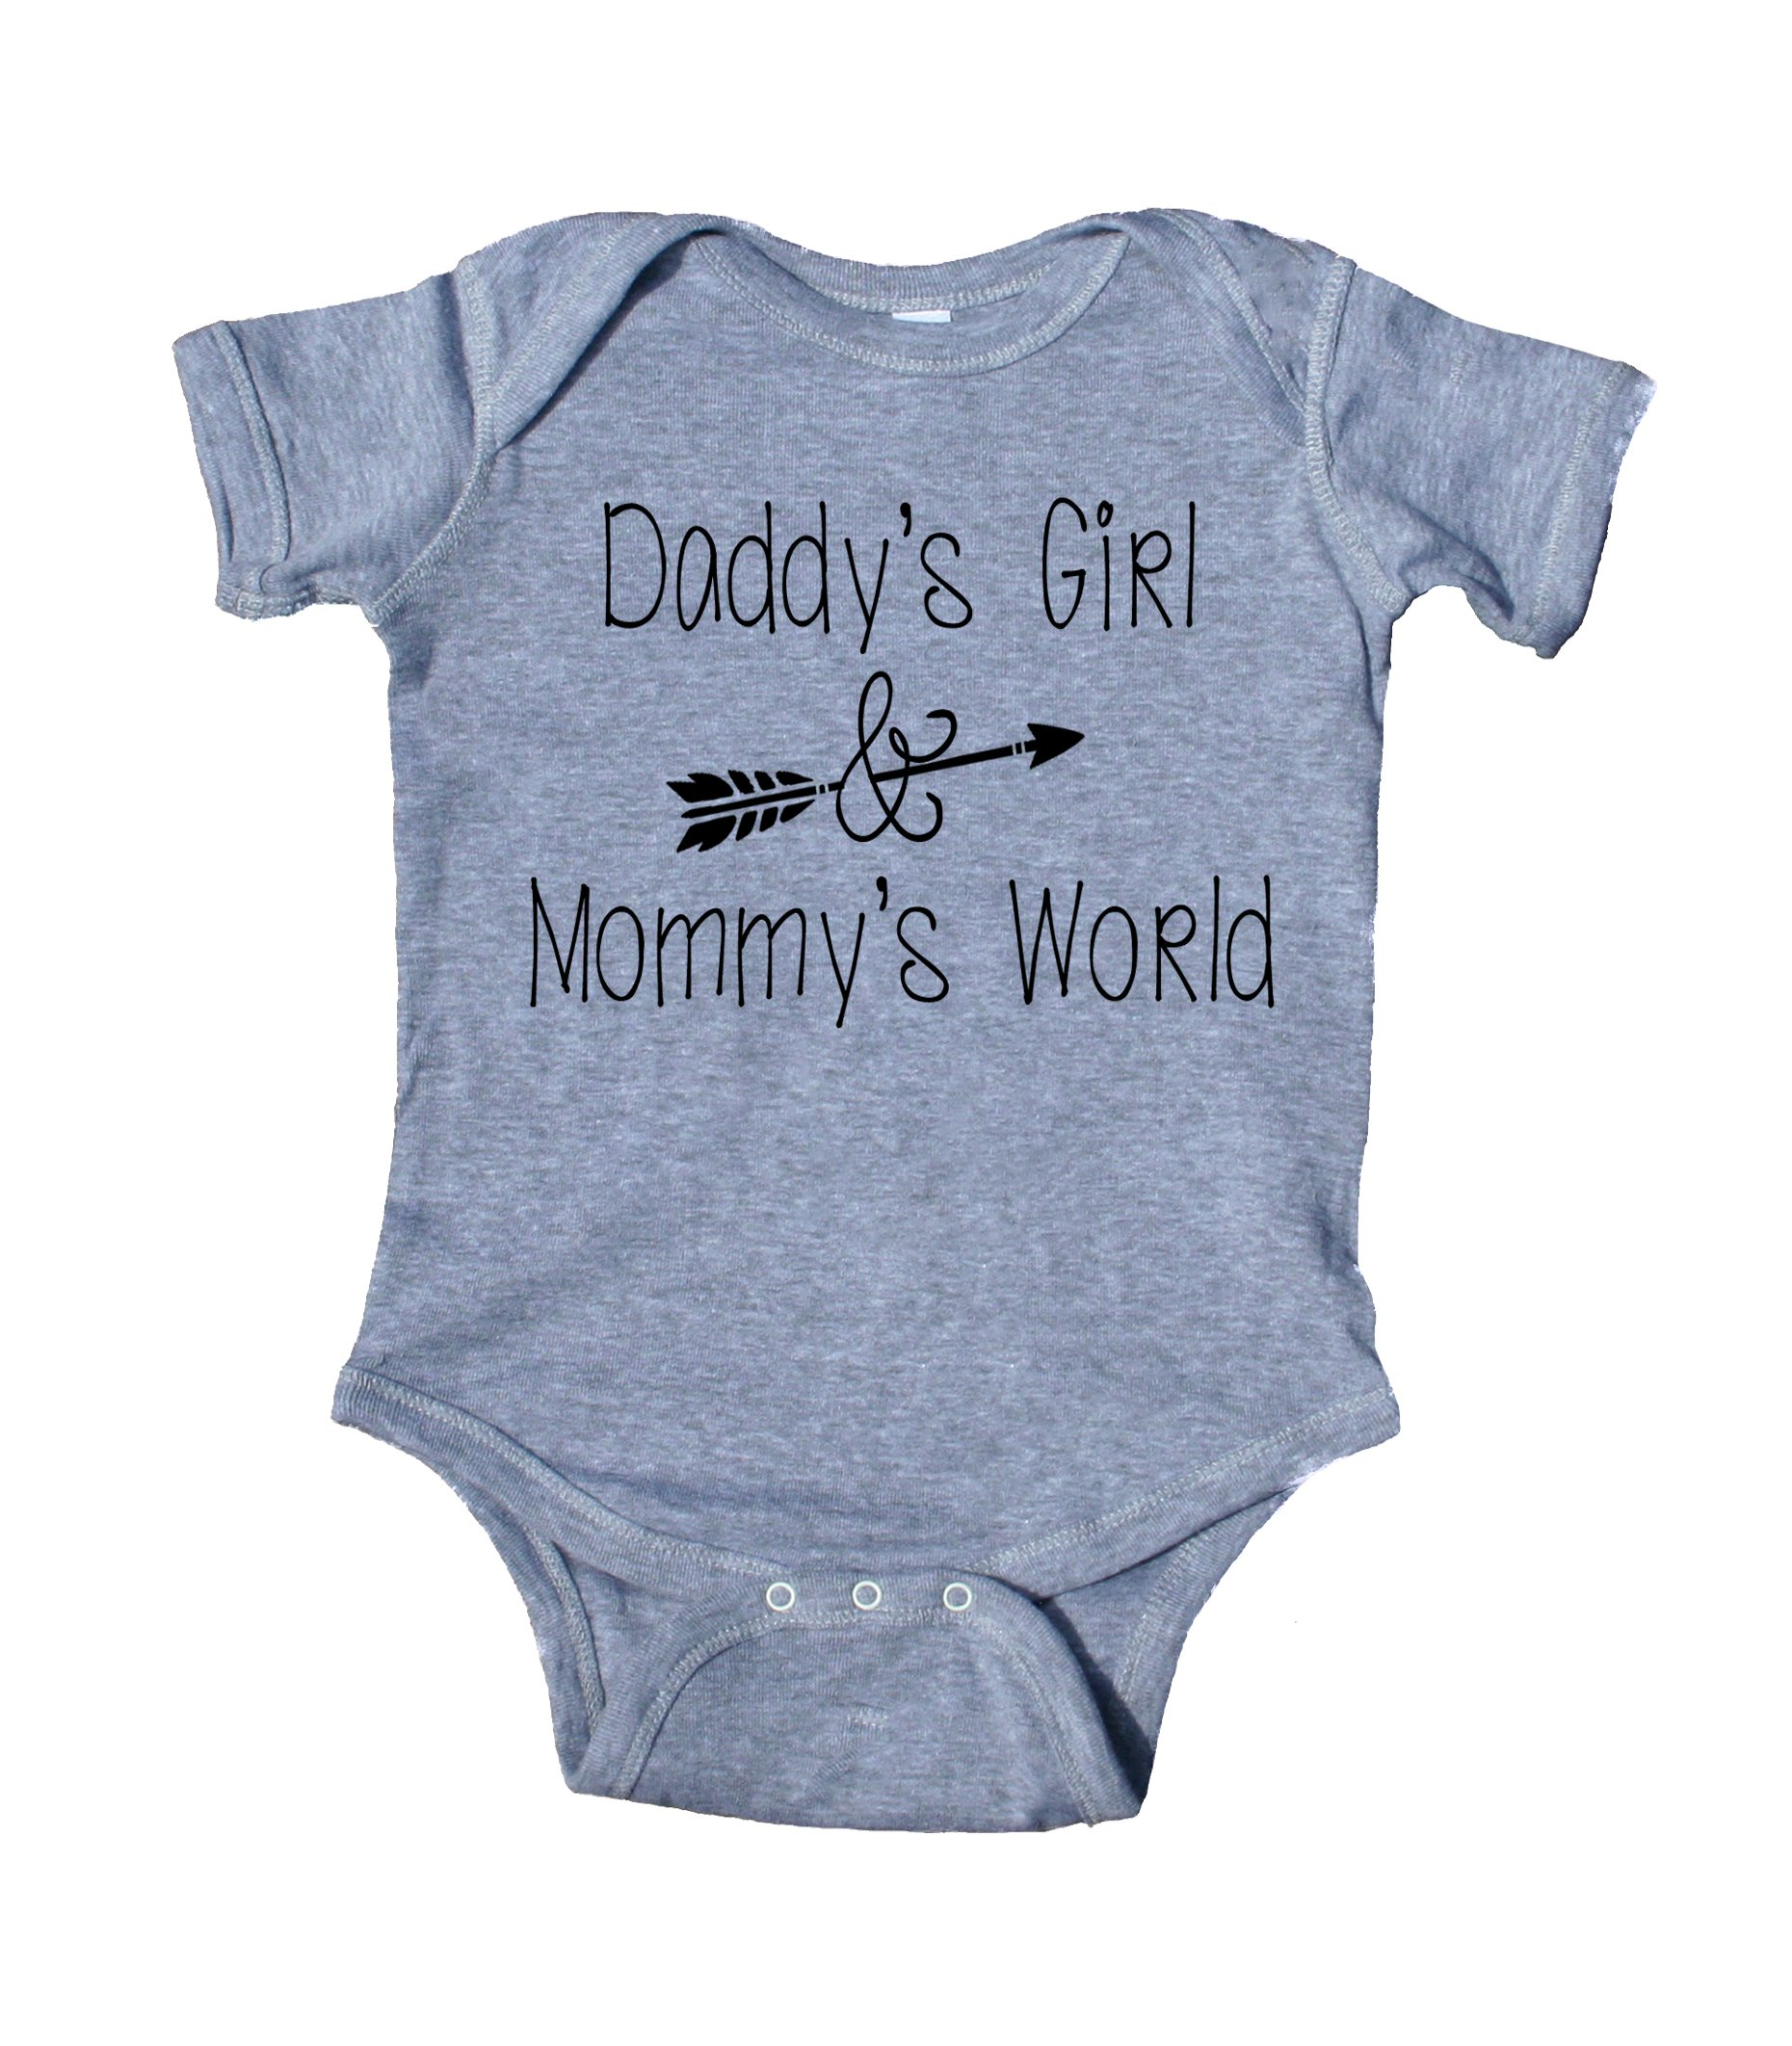 Image of Daddy's Girl And Mommy's World Baby Onesuit Cute Girl's Clothing